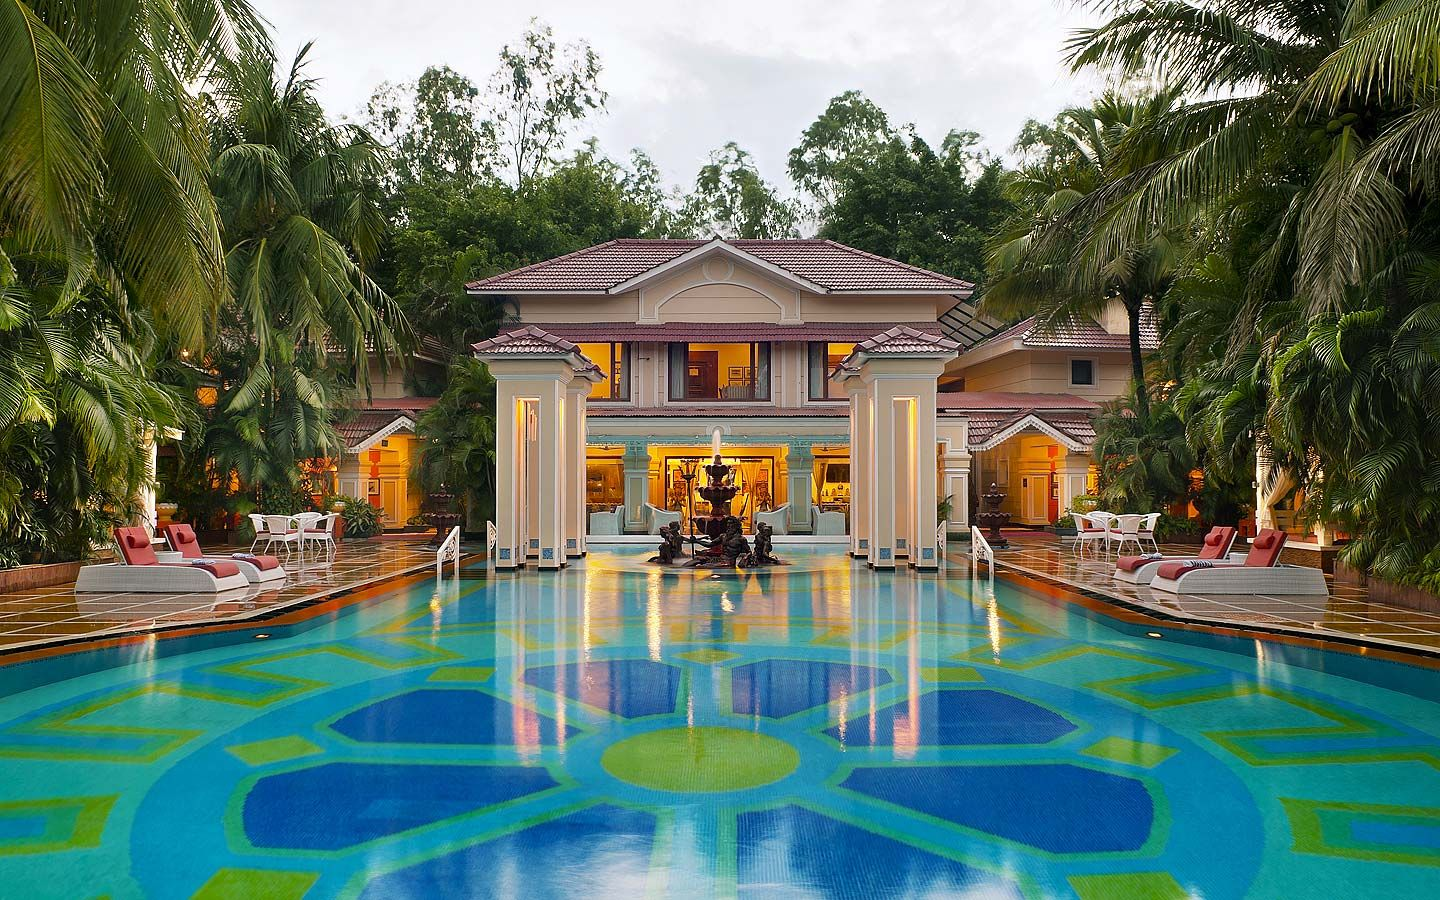 Mayfair Lagoon One Of The Best 5 Star Hotels In Bhubaneswar Offers Lake Gardens And Pool View Rooms Cottages Villas To Make Your Stay A Memorable